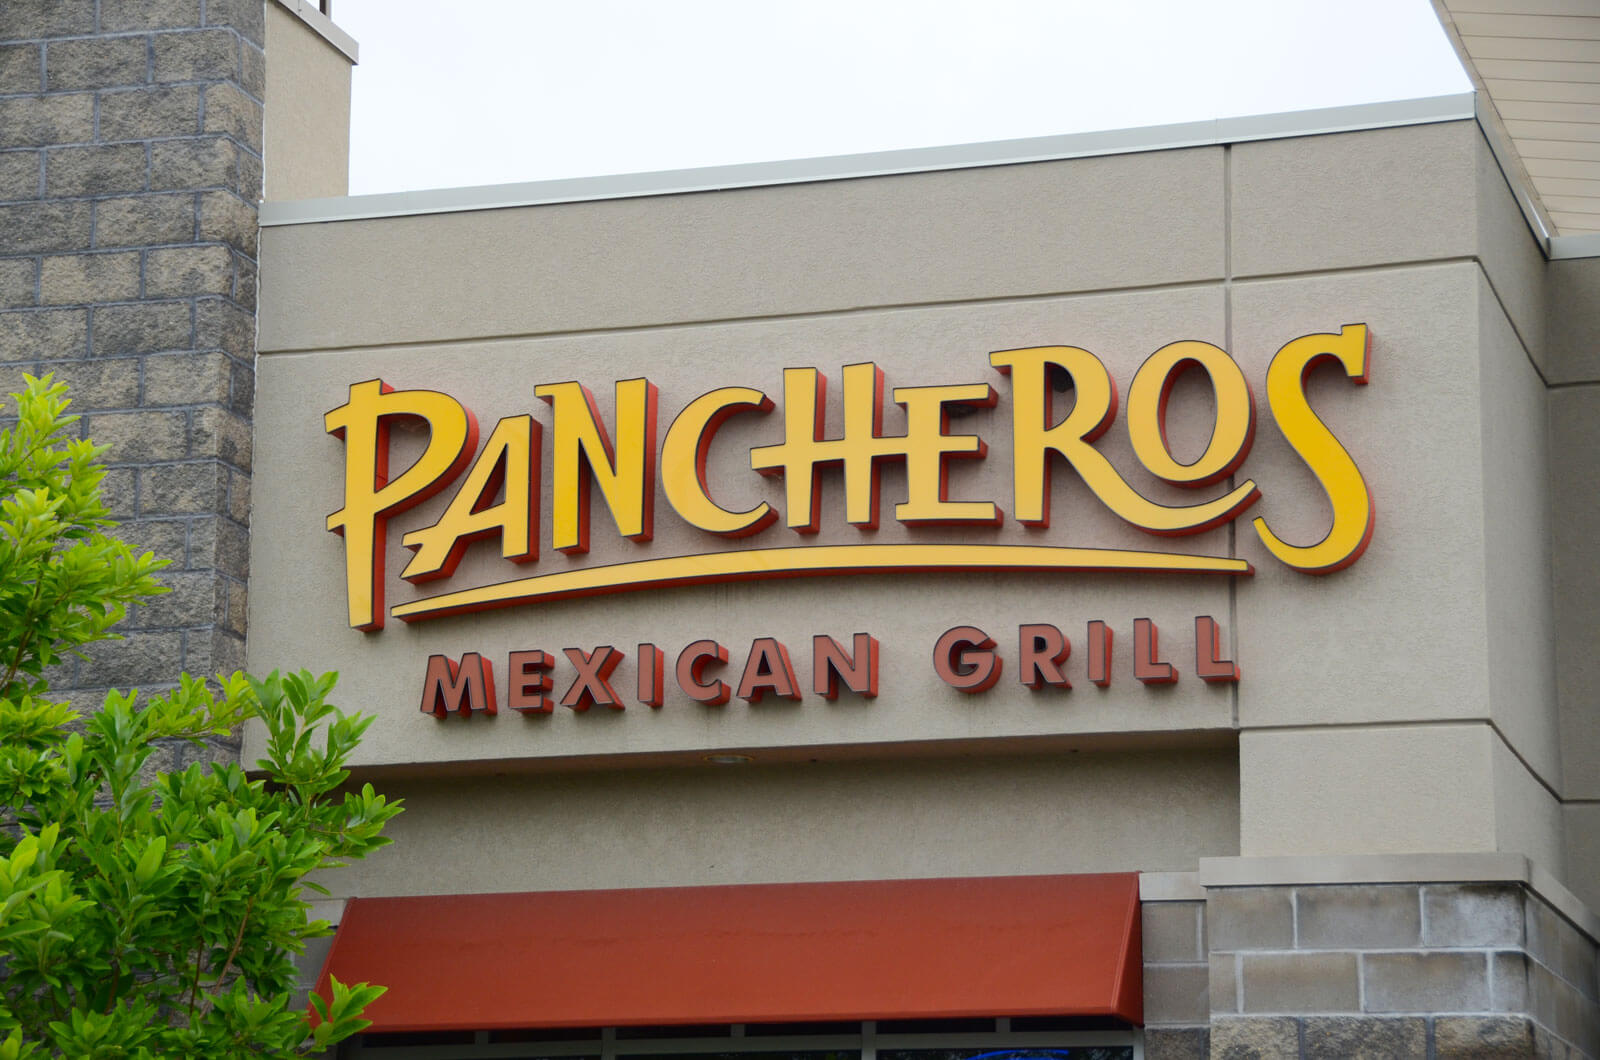 Pancheros Mexican Grill sign